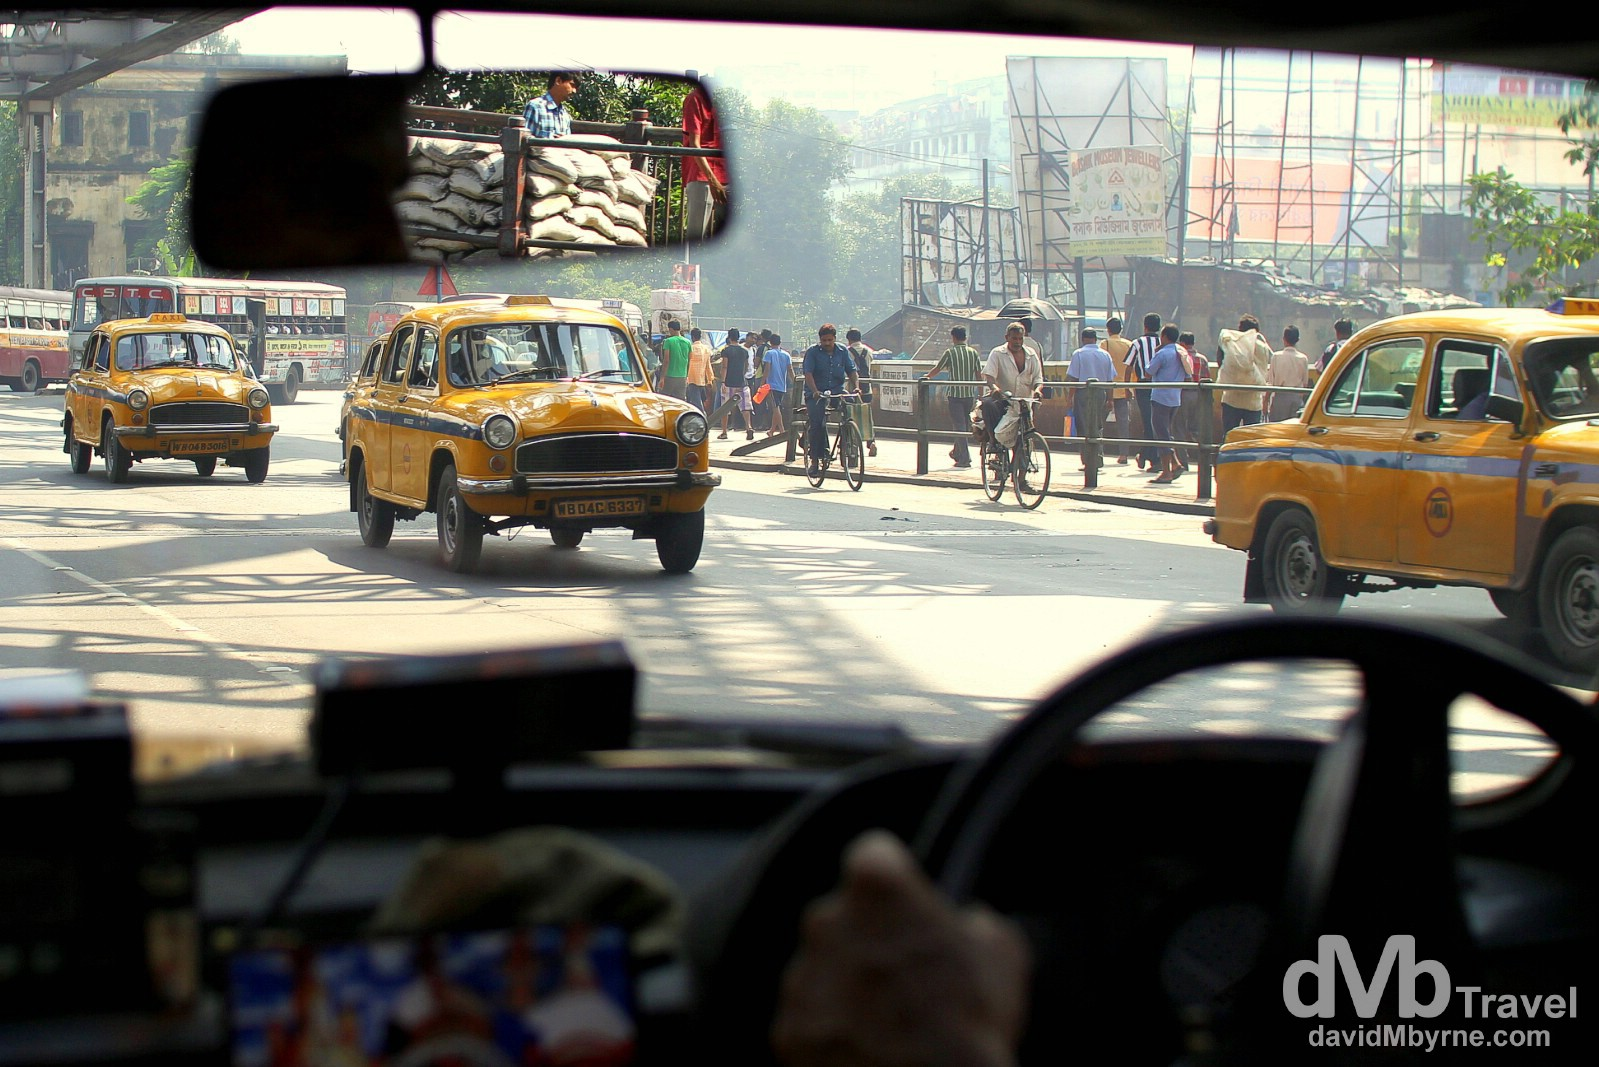 In a taxi on the streets of Kolkata (Calcutta), West Bengal, India. October 15th 2012.